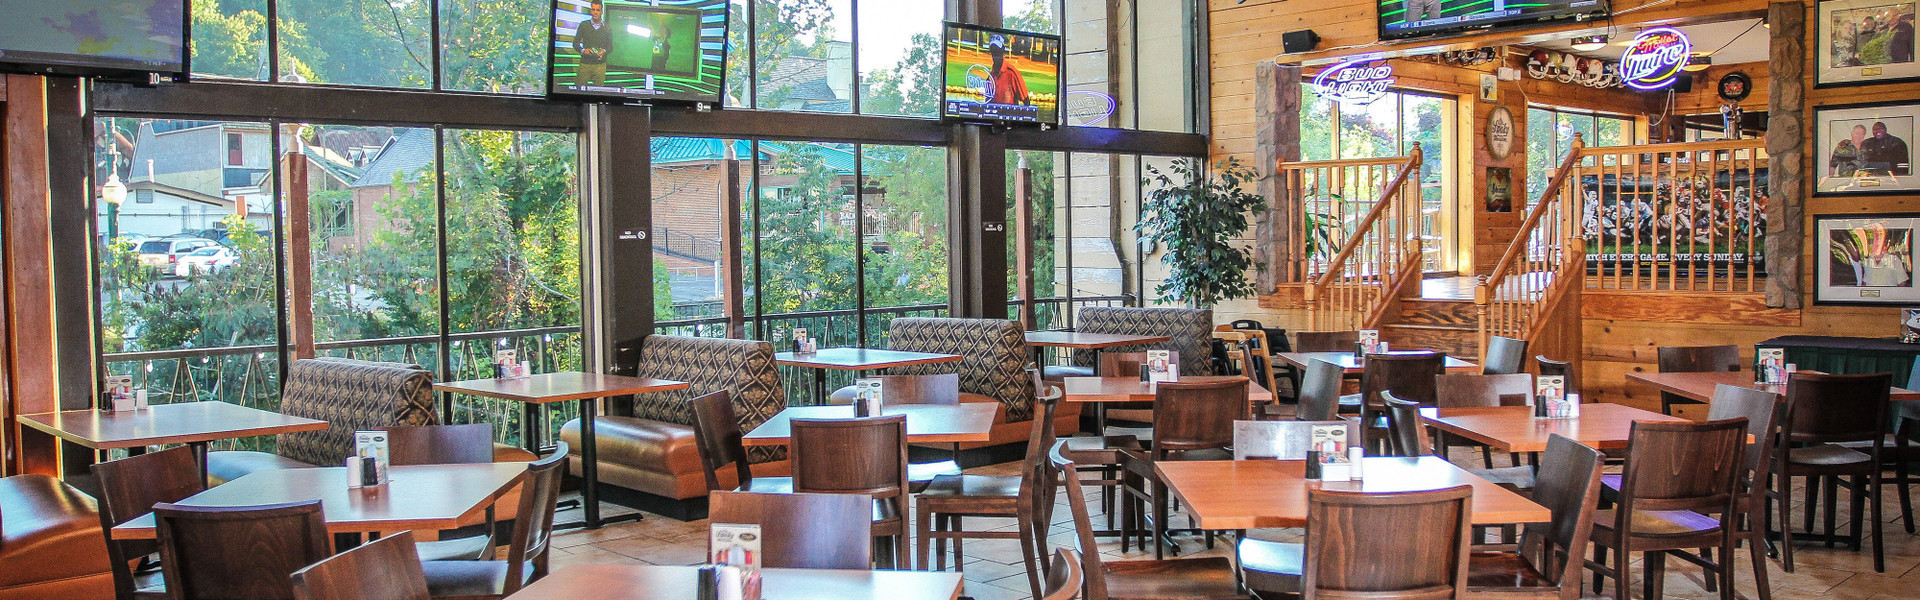 An ideal gathering place at River Terrace Resort, Drafts Burger Bar brings together the popular concepts of brew pubs and gourmet burger bars.